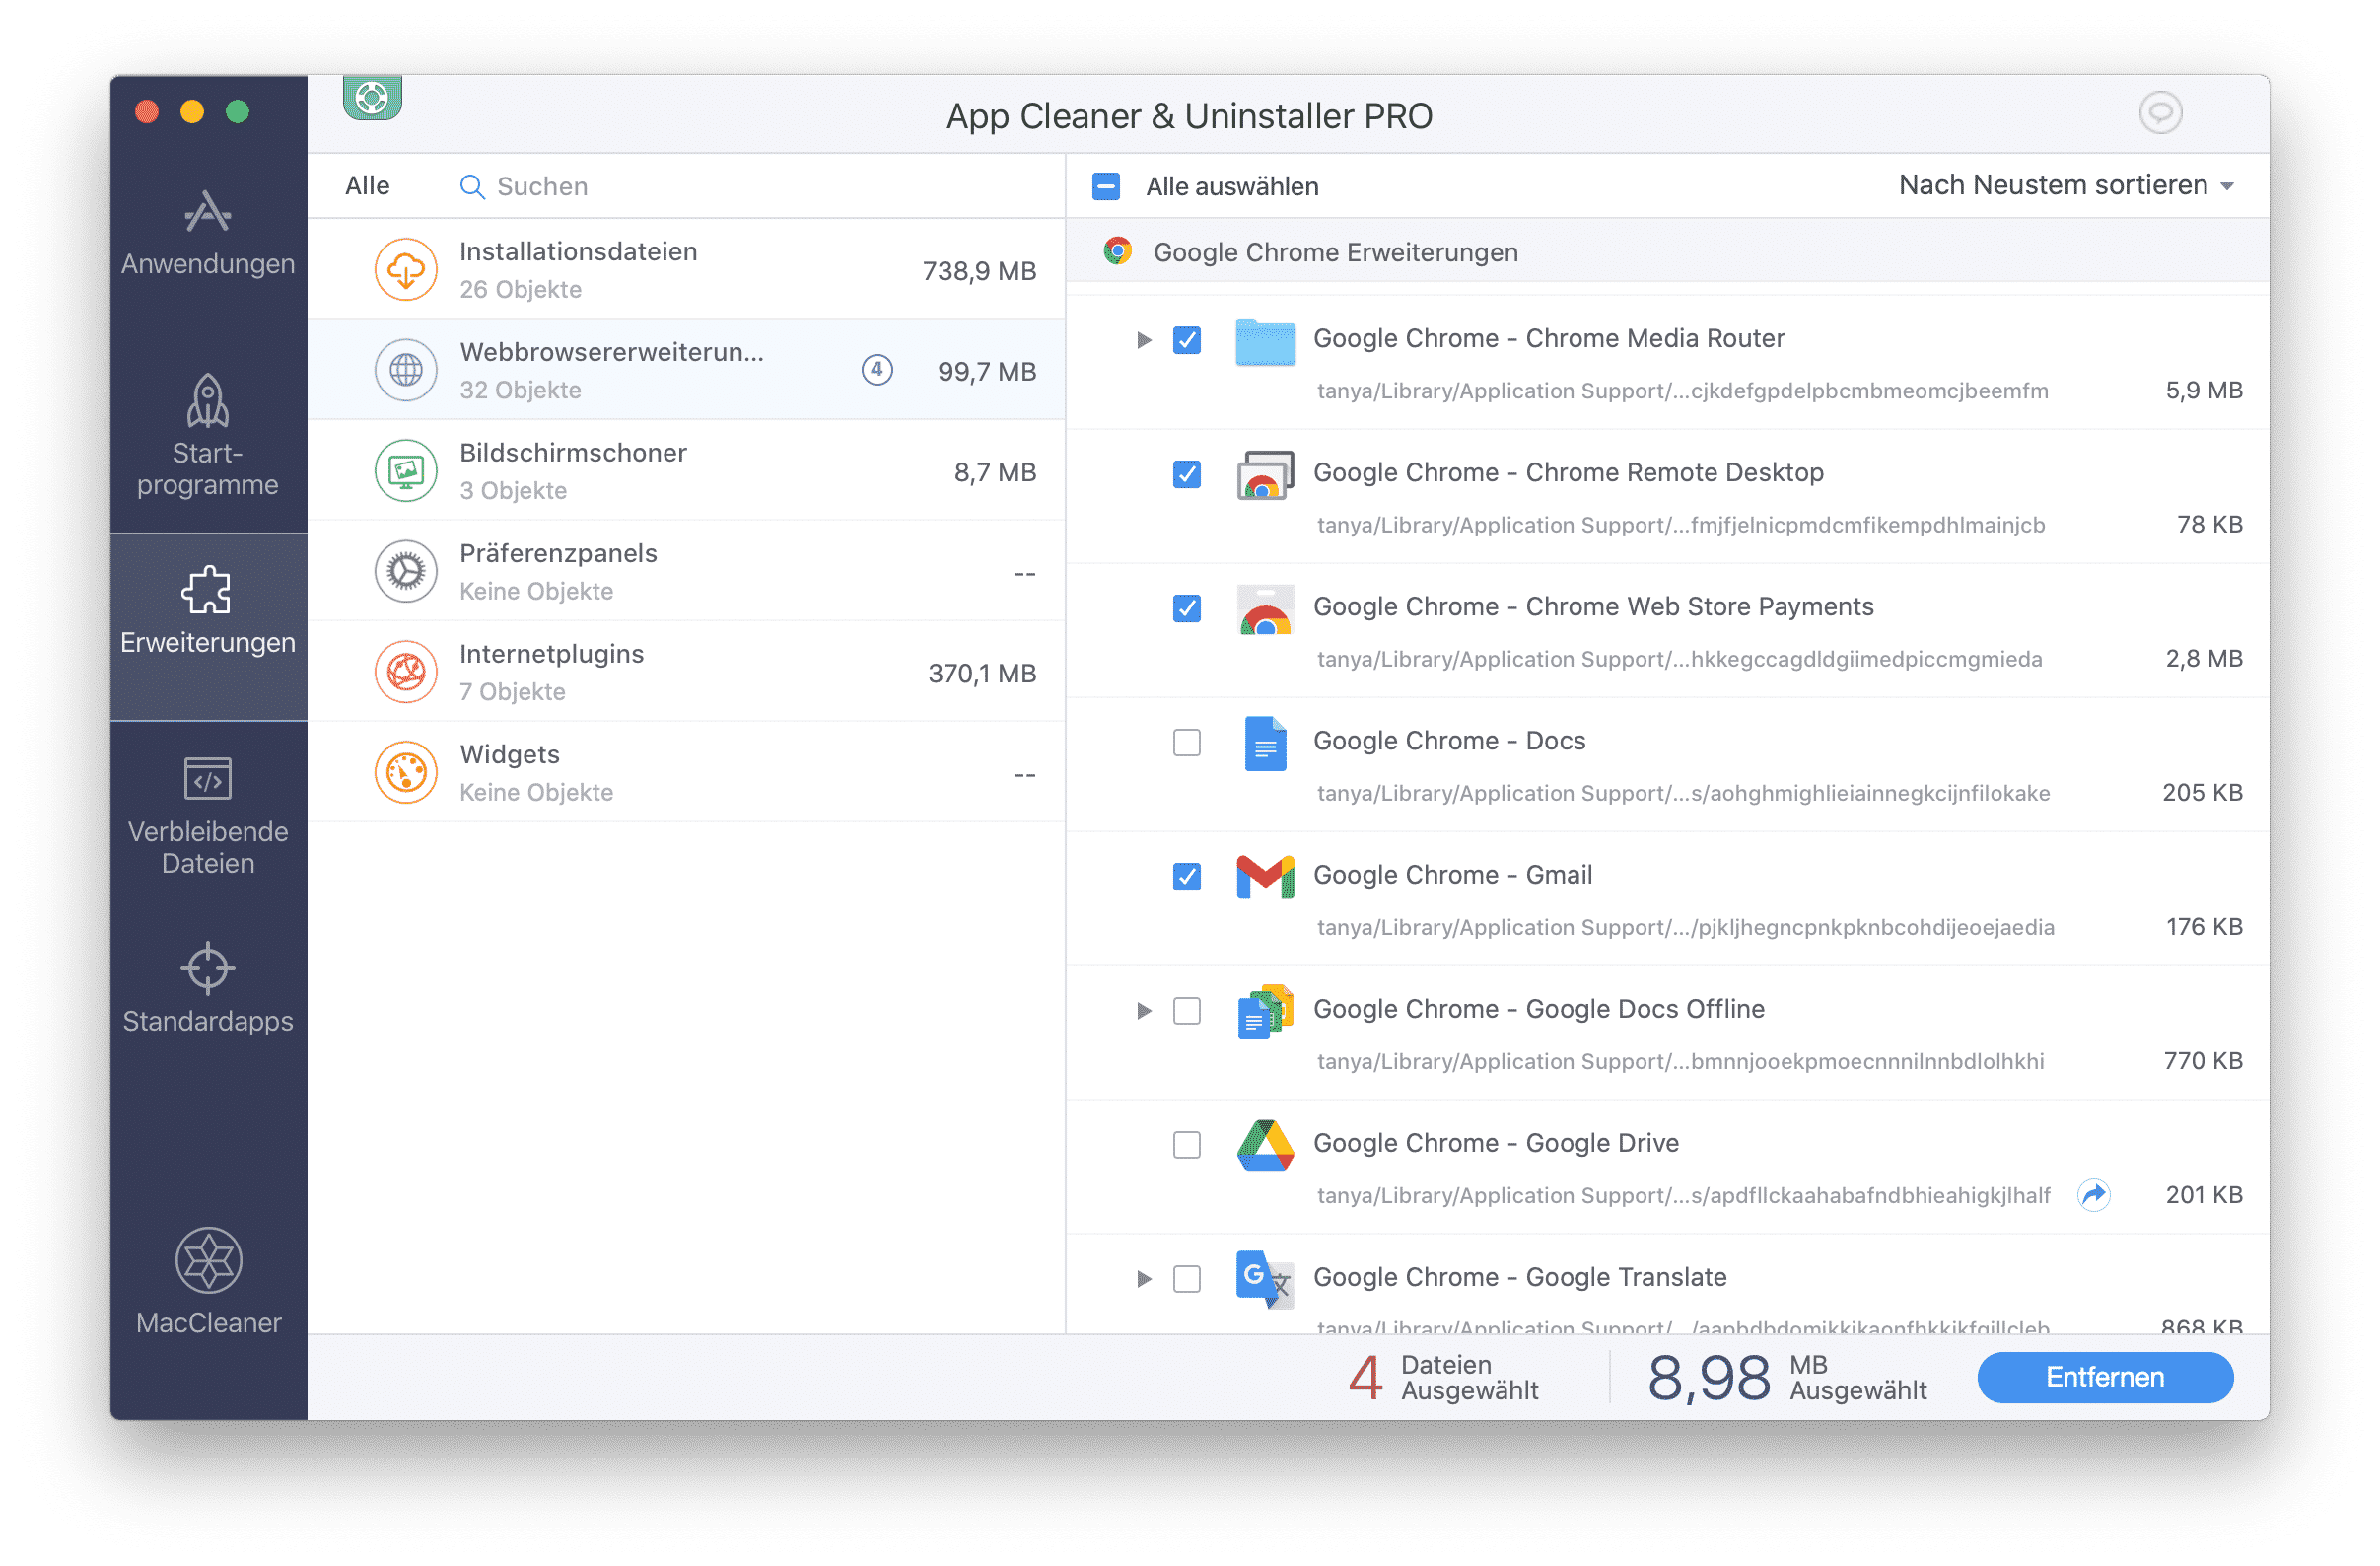 app cleaner extensions